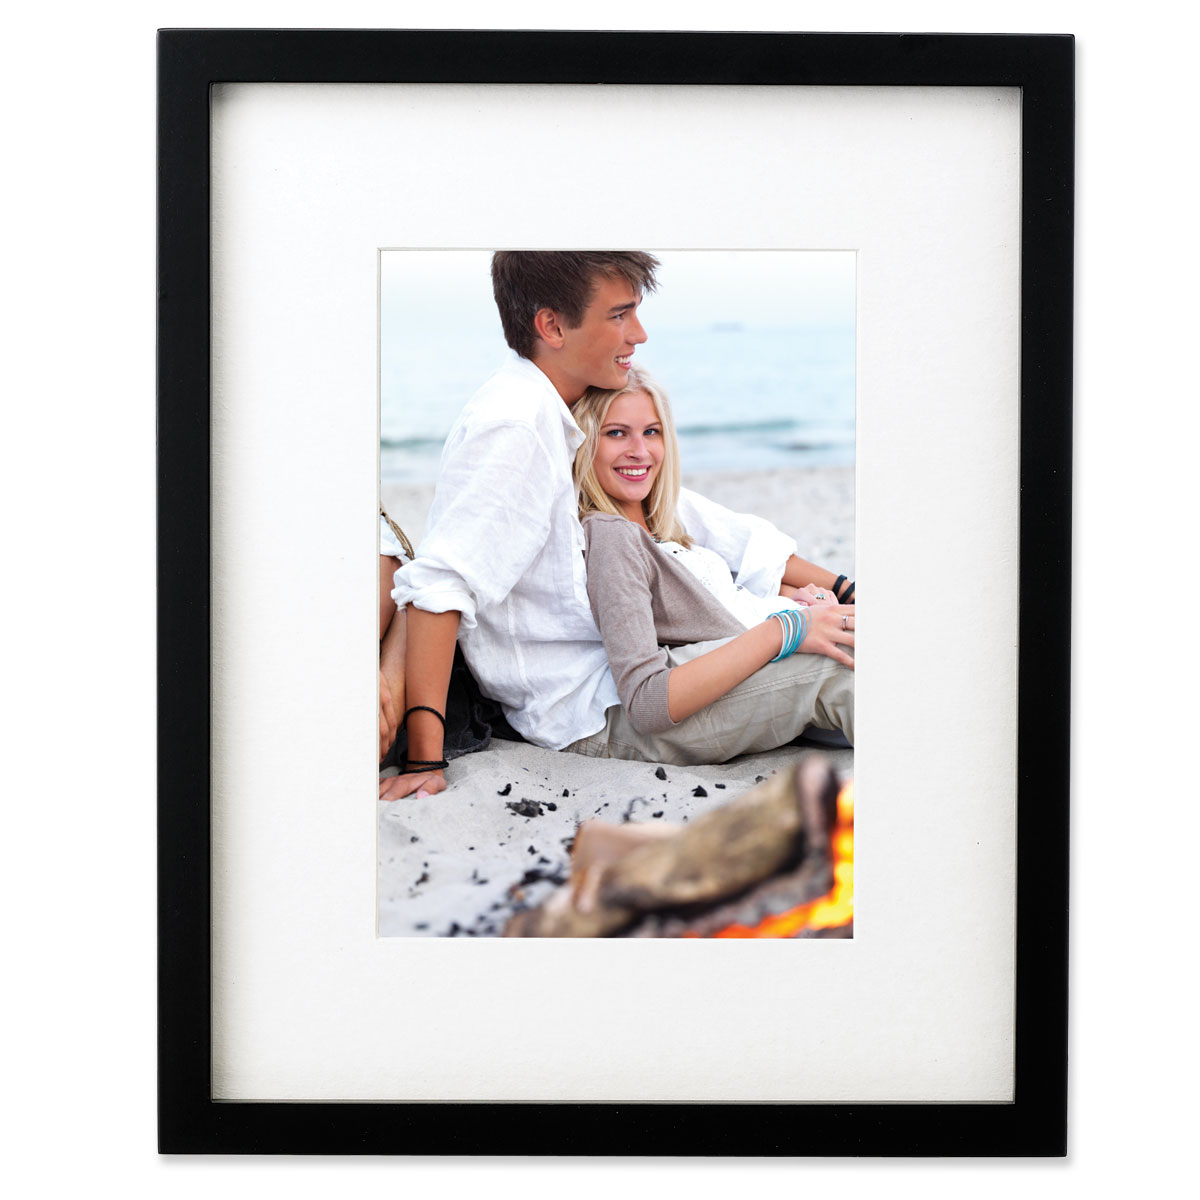 Black Wood 11x13 Picture Frame Matted to 8x10 by Lawrence Frames